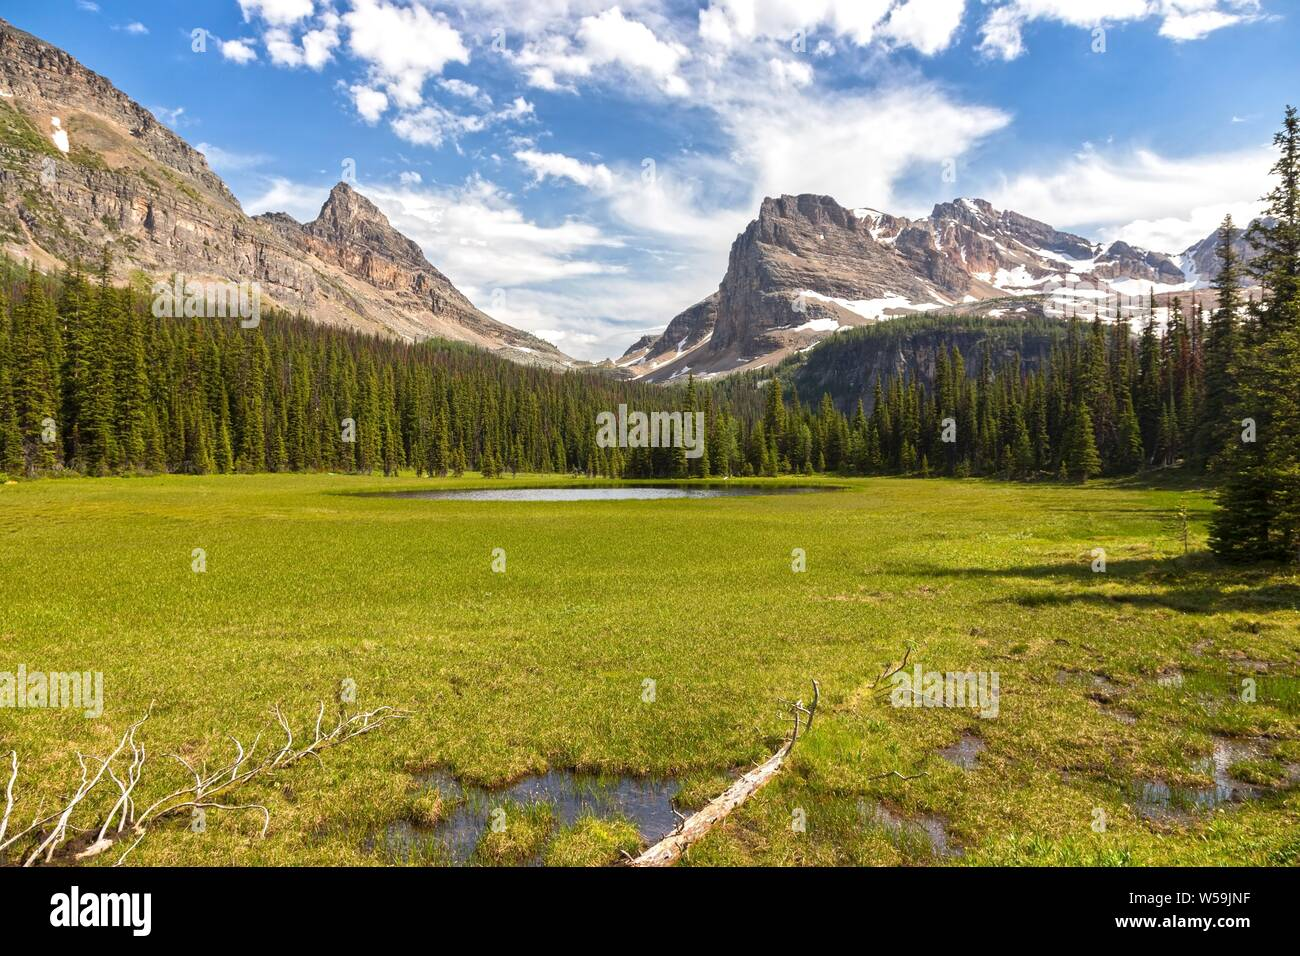 Green Alpine Meadows Natural Parkland and Distant Mountain Peaks Summertime Hiking Banff National Park Canadian Rockies Stock Photo